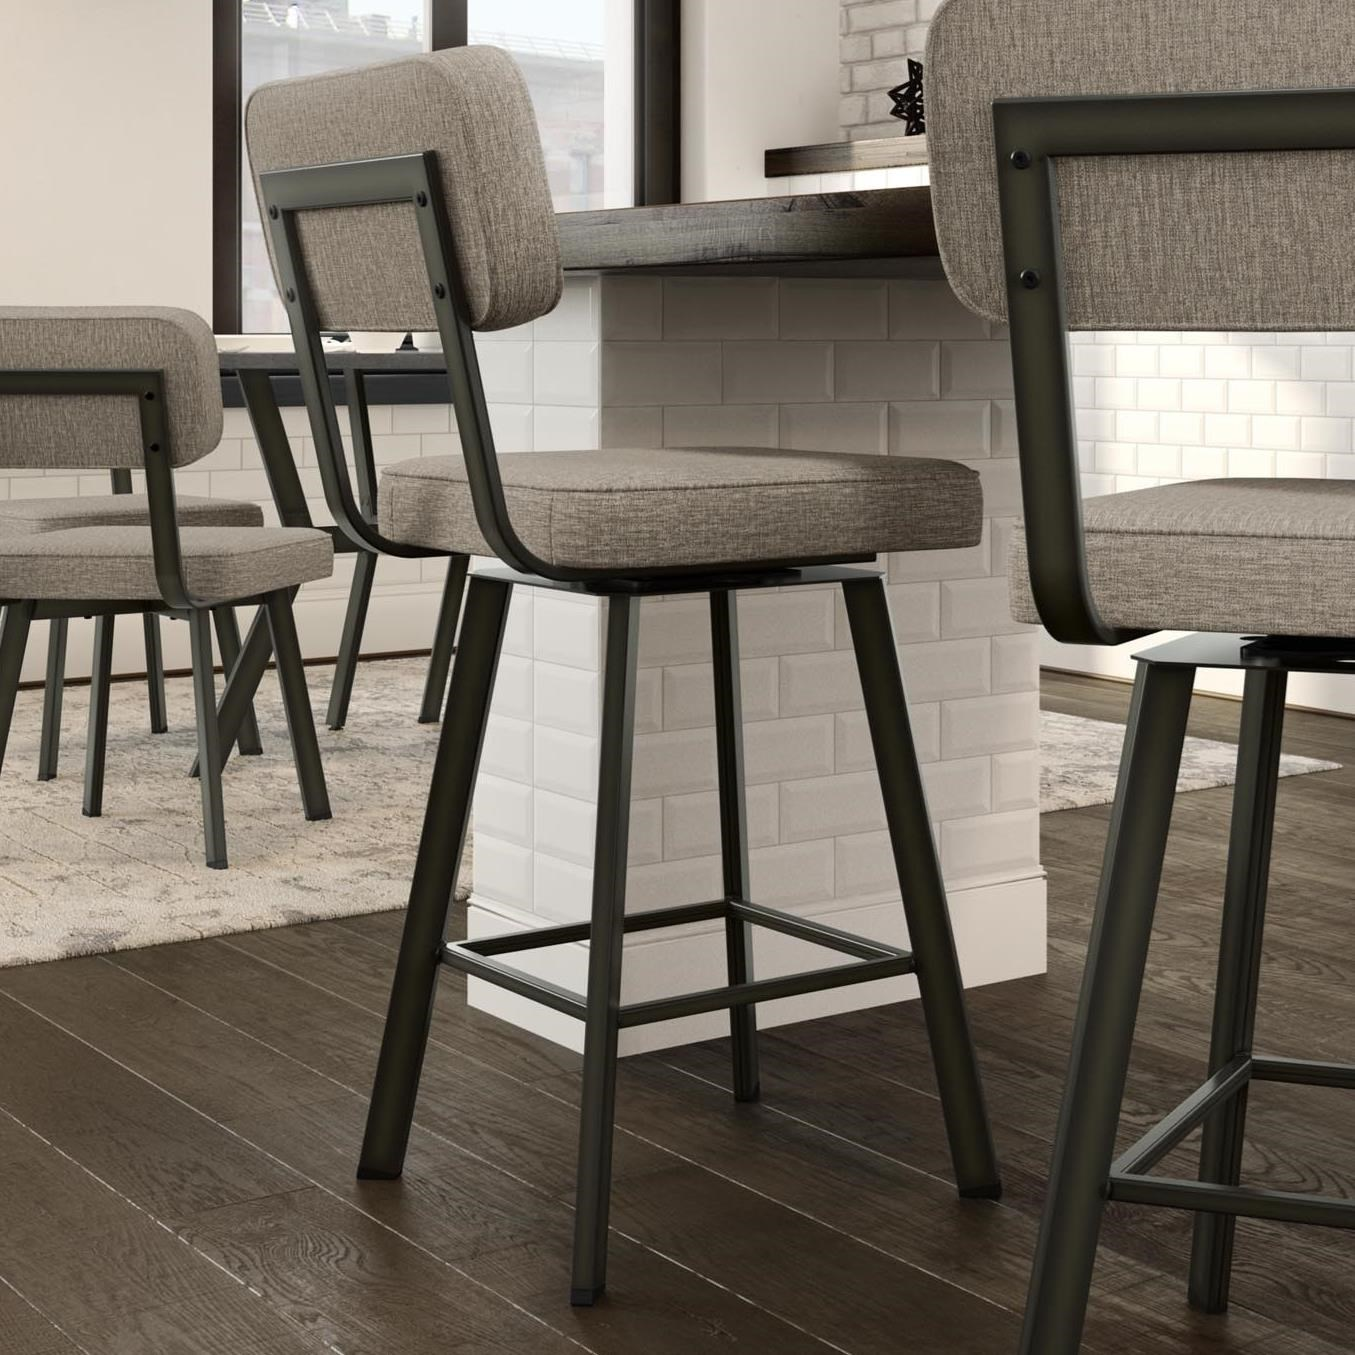 Industrial Brixton Swivel Stool, Counter Height by Amisco at Dinette Depot